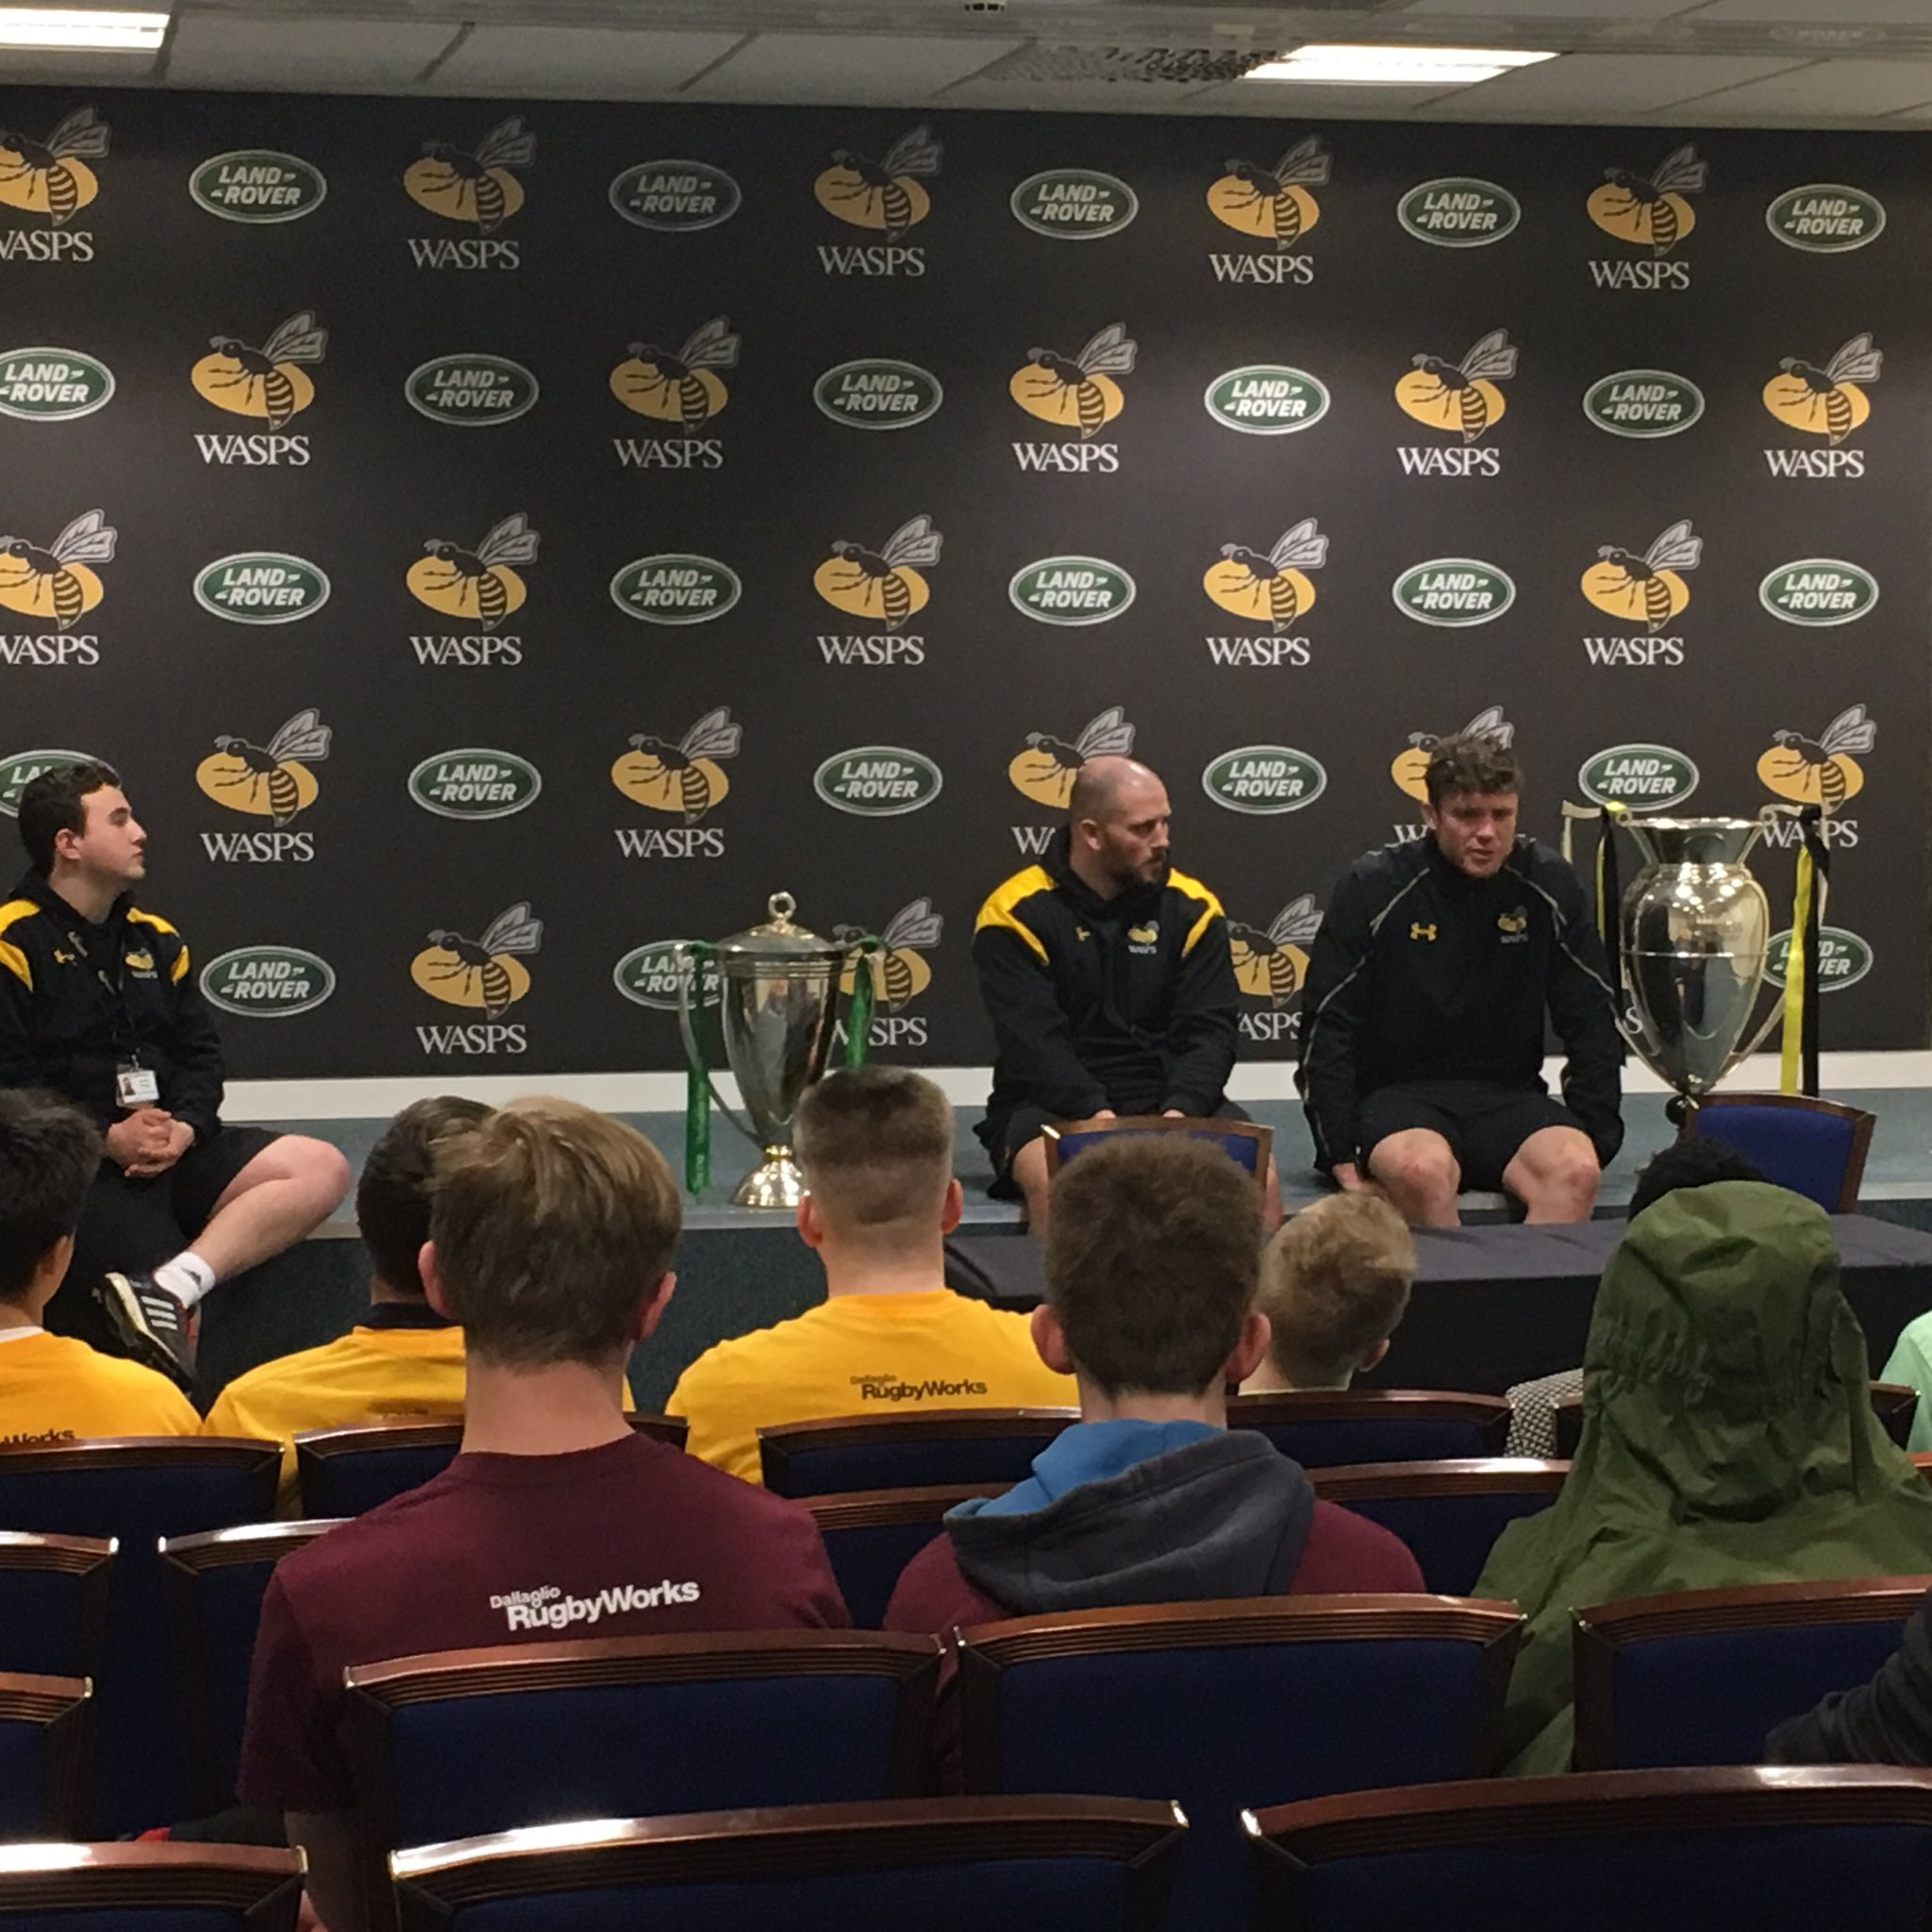 Young people from #DallaglioRugbyWorks asking @WaspsRugby players questions about their career choices. https://t.co/f2XT10lOxy